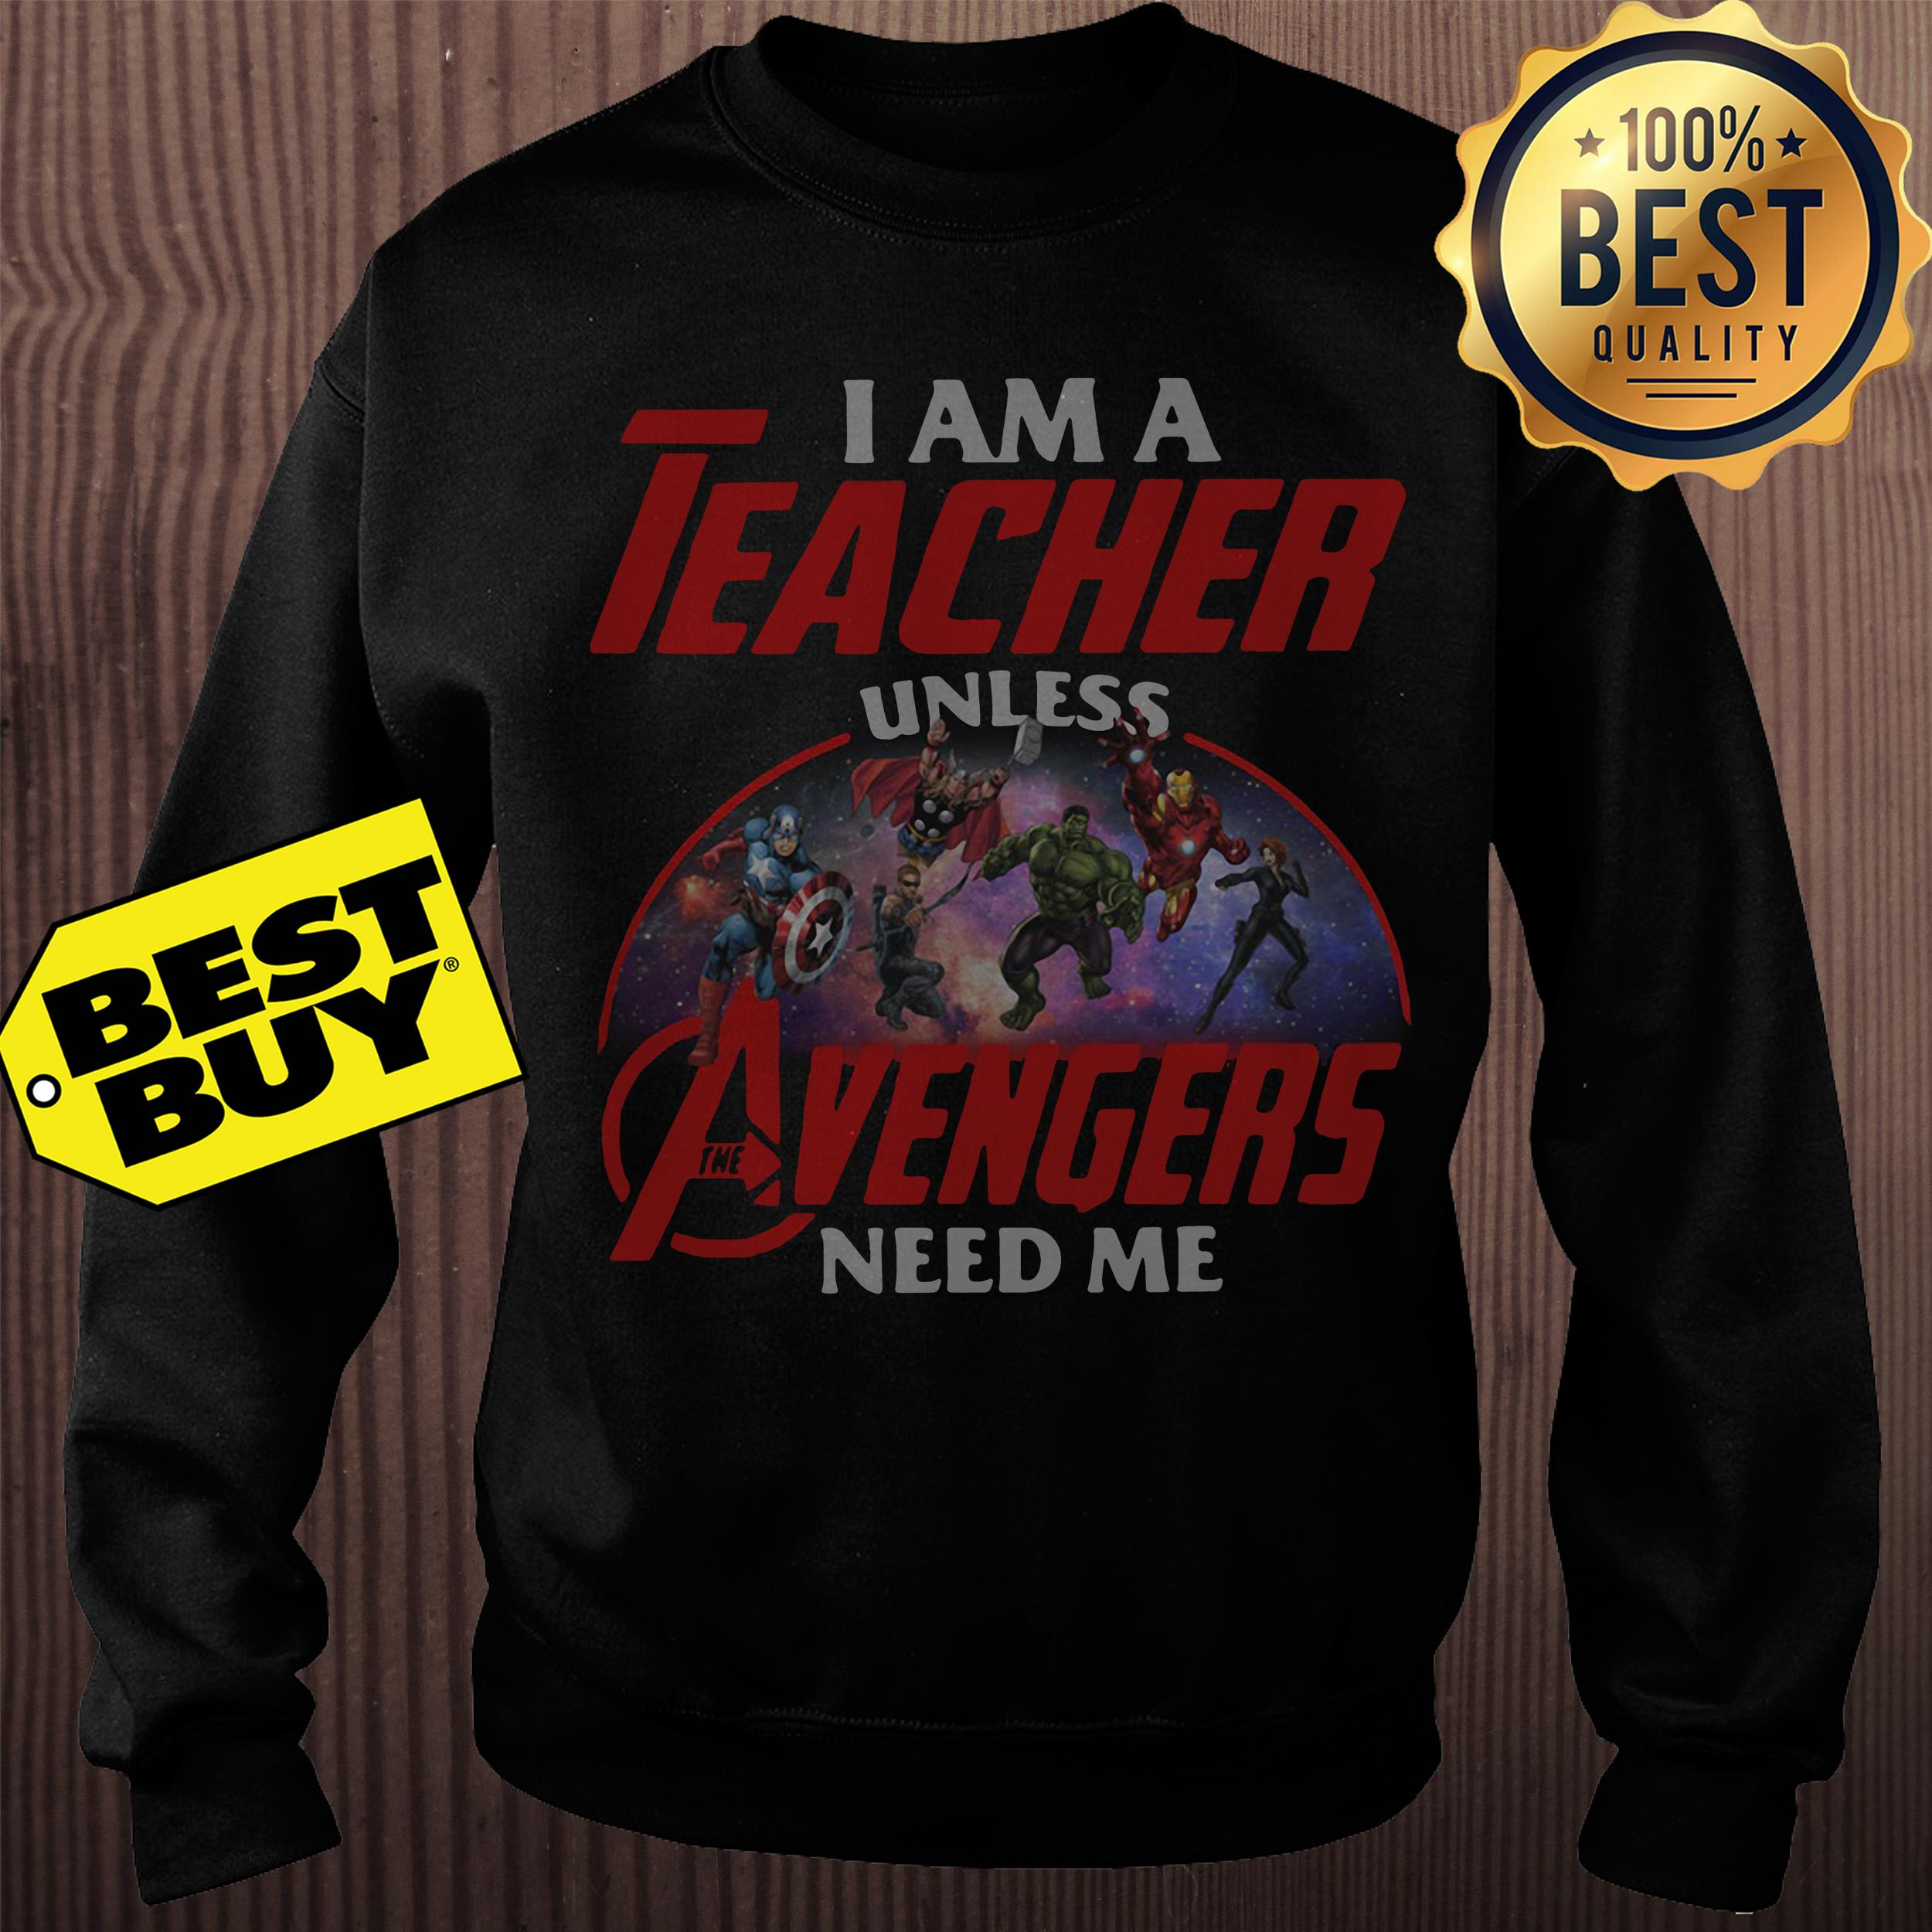 I am a teacher unless Avengers need me sweatshirt